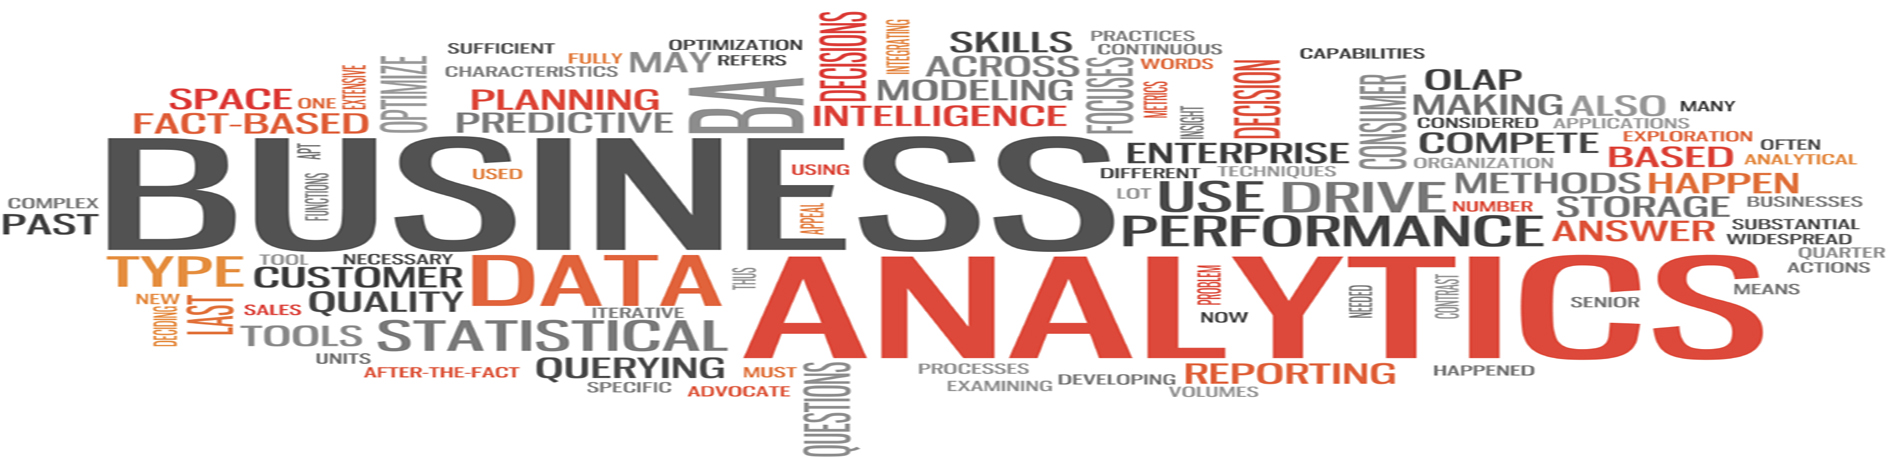 Business Analytics Word Cloud 1900X460